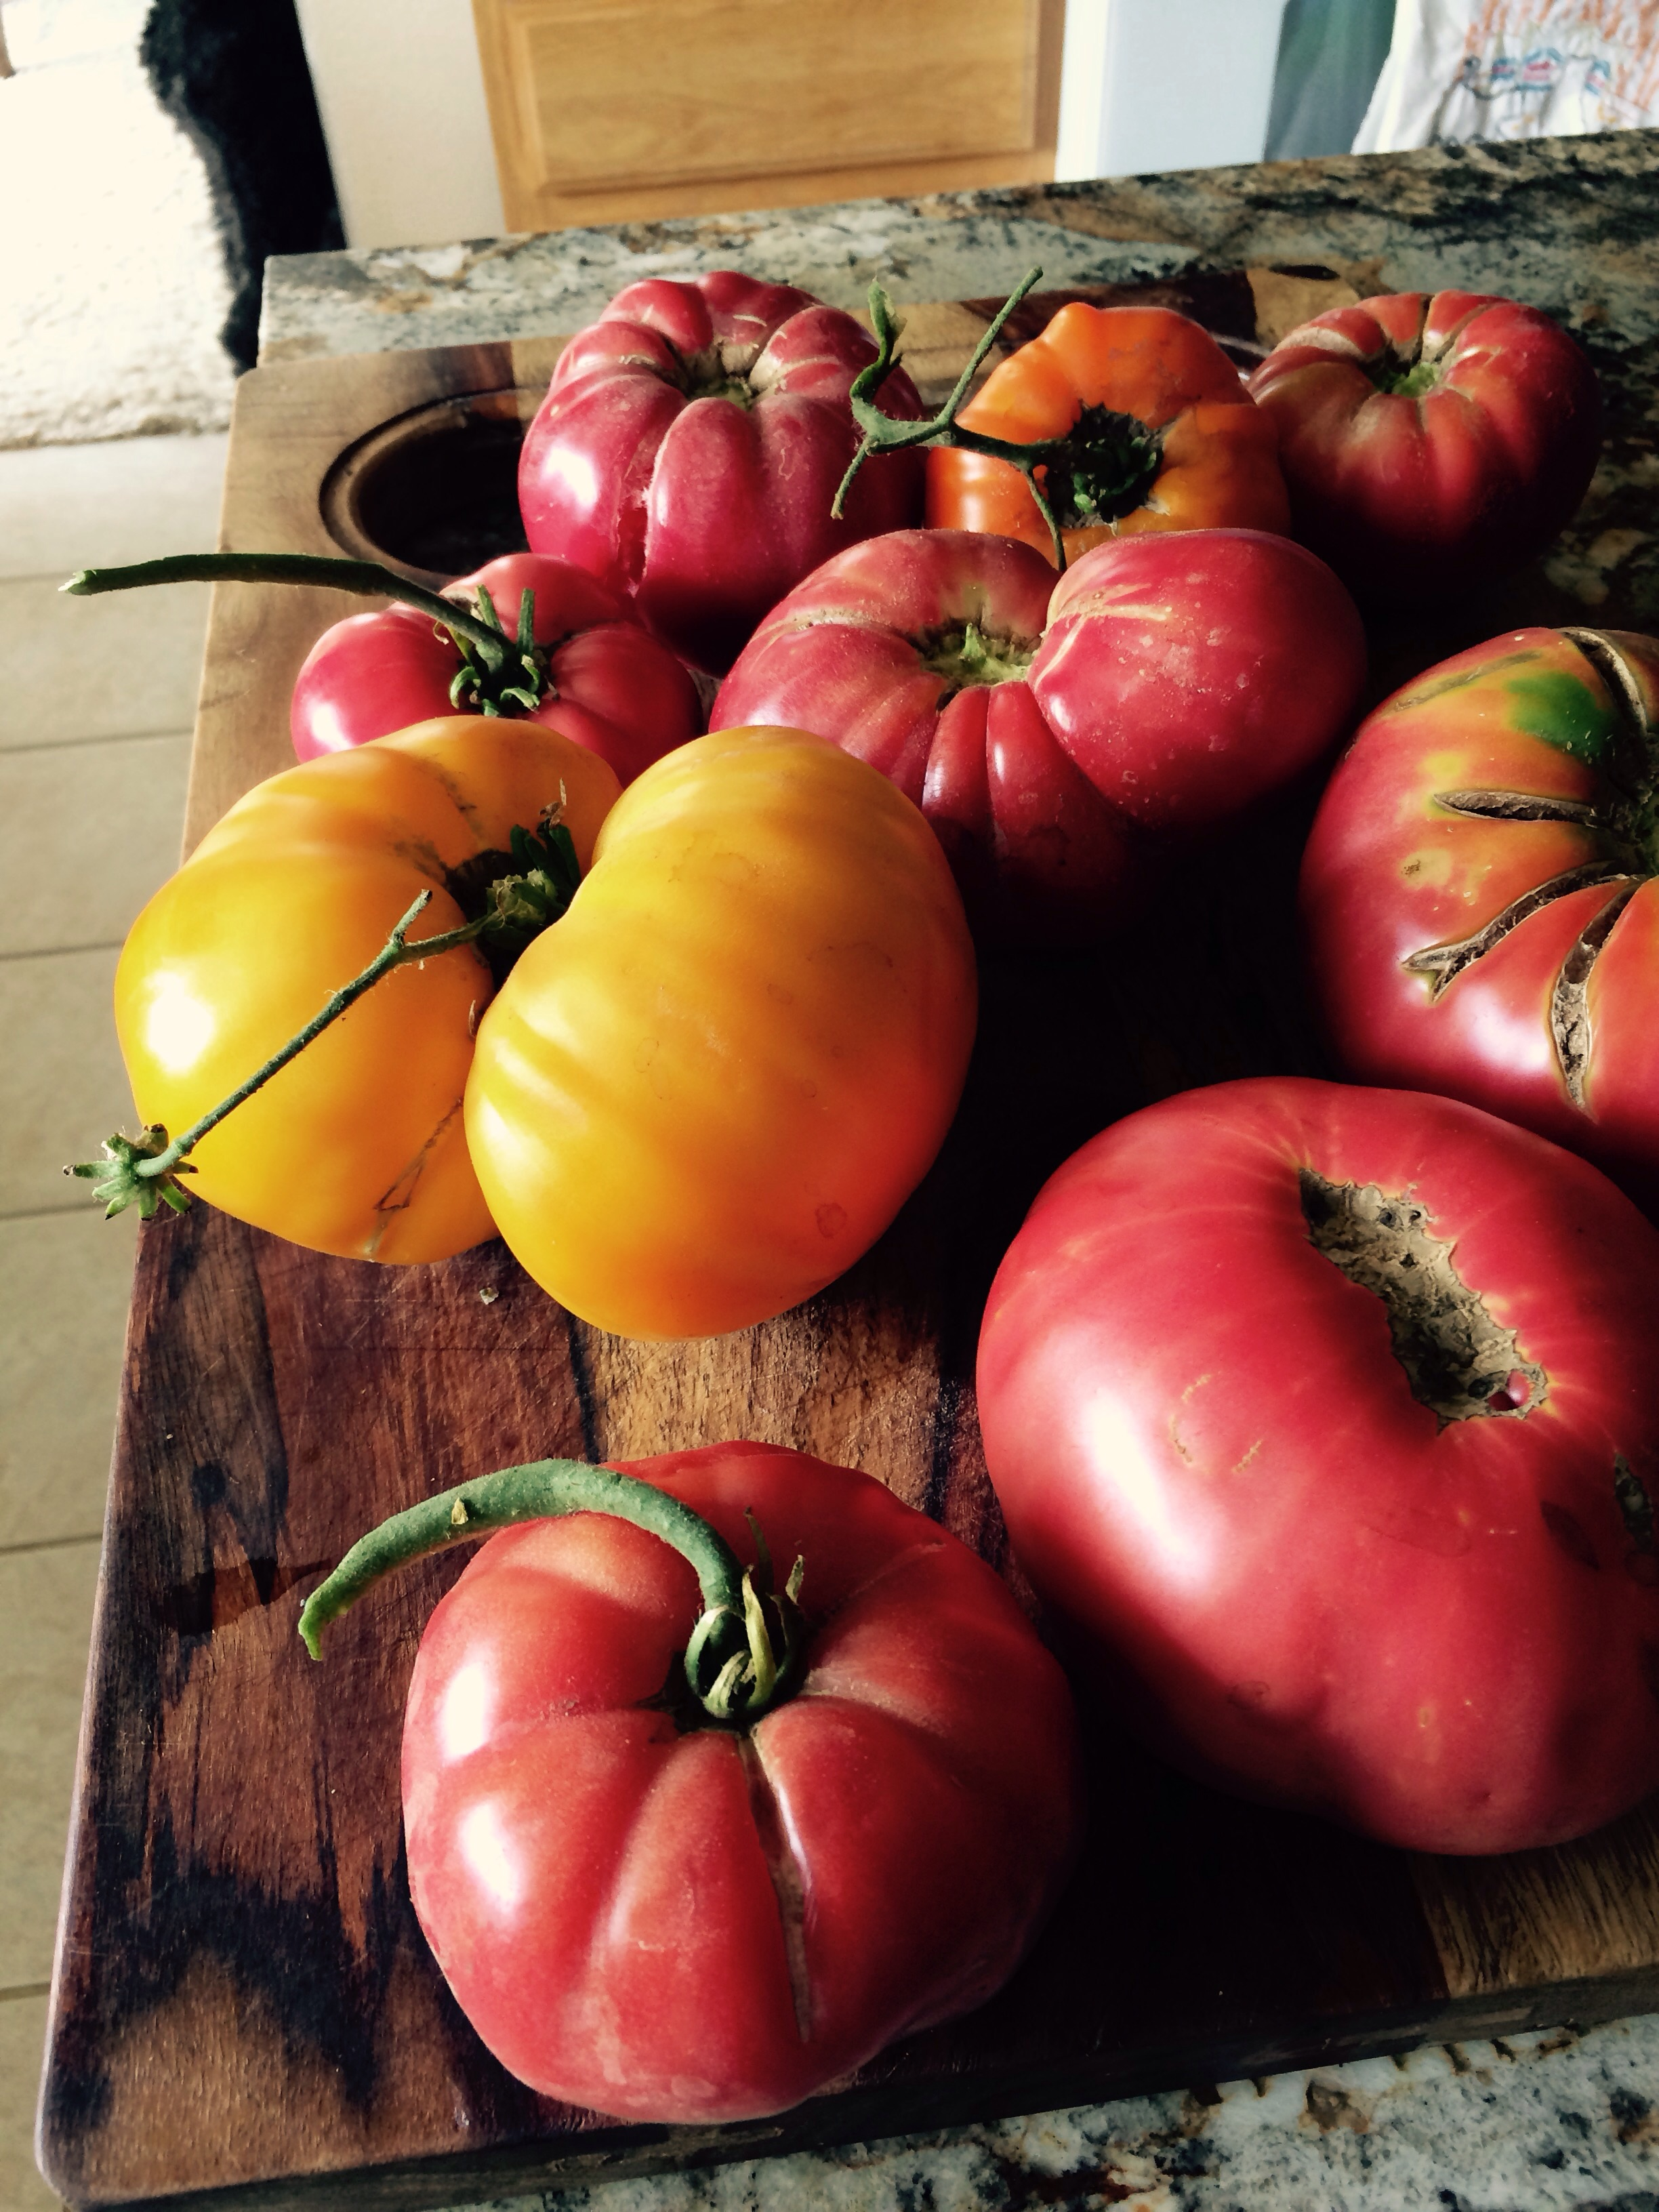 My good friend Nancy White is coming to the farm and we are going to make hierloom tomato sauce and can them looking forward to some hard work to preserve all these wonderful tomatoes